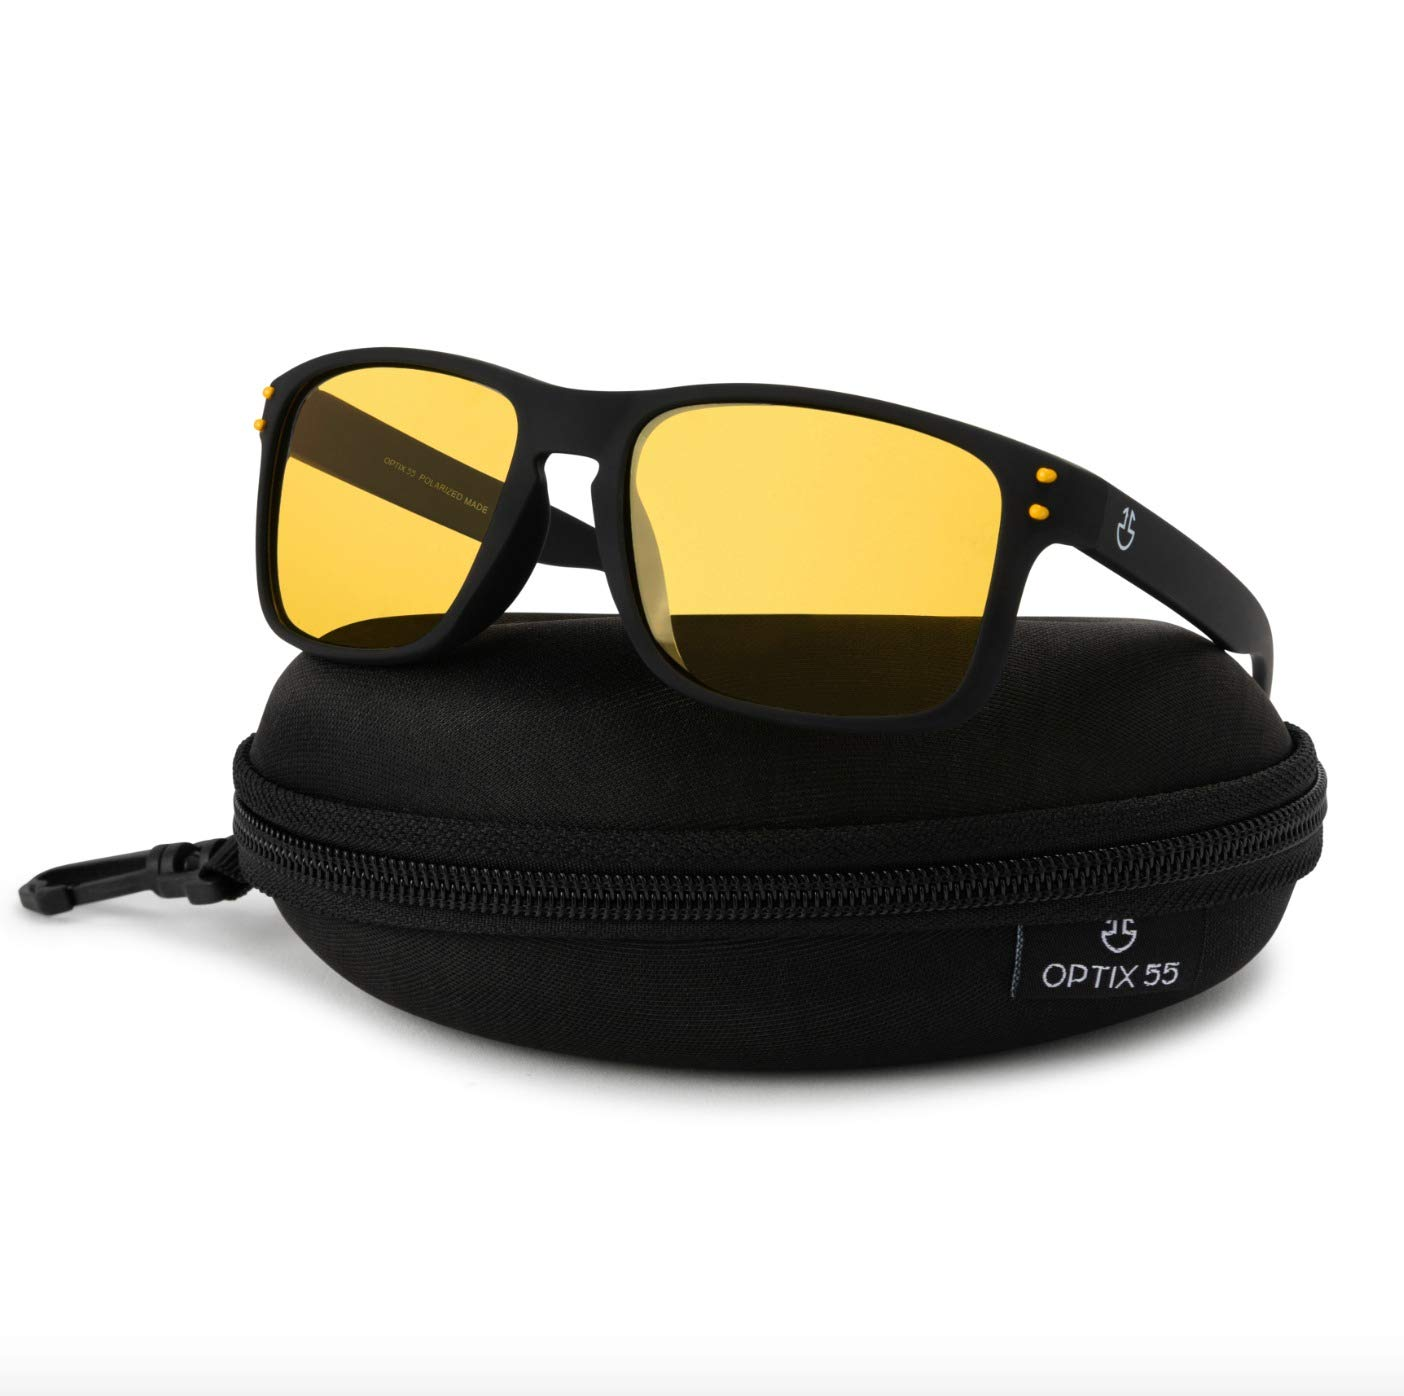 Optix 55 Anti Glare Polarized Yellow Tinted